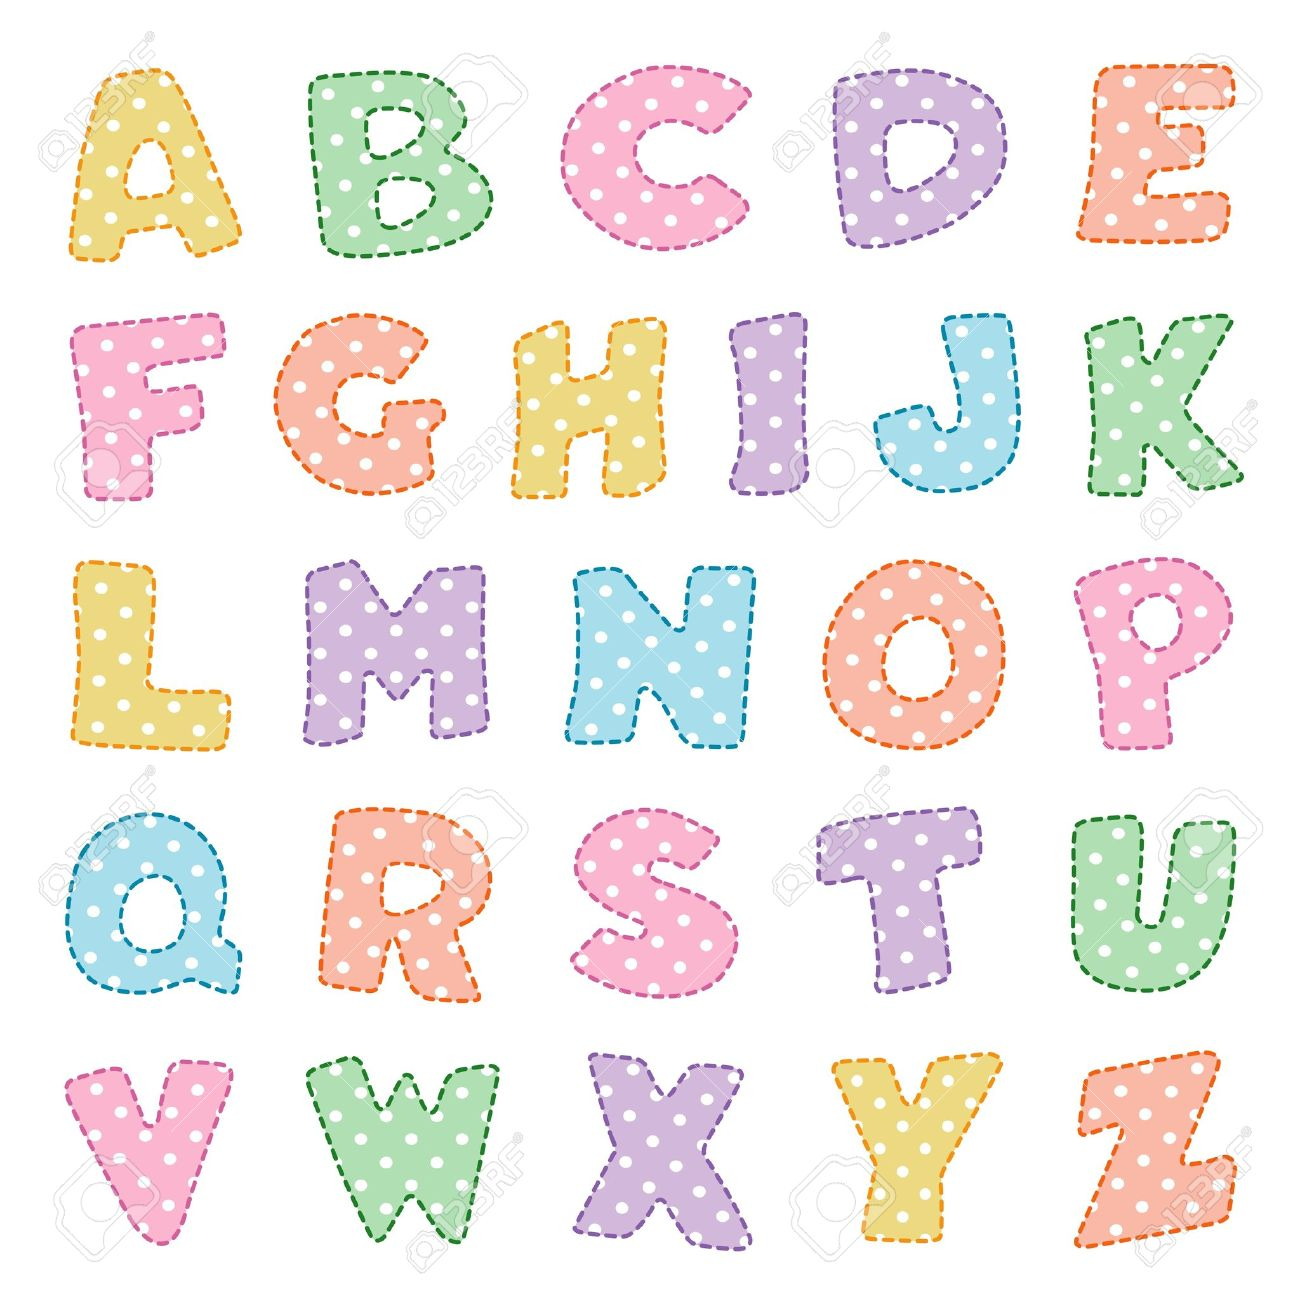 alphabet original design in pastels with white polka dots royalty